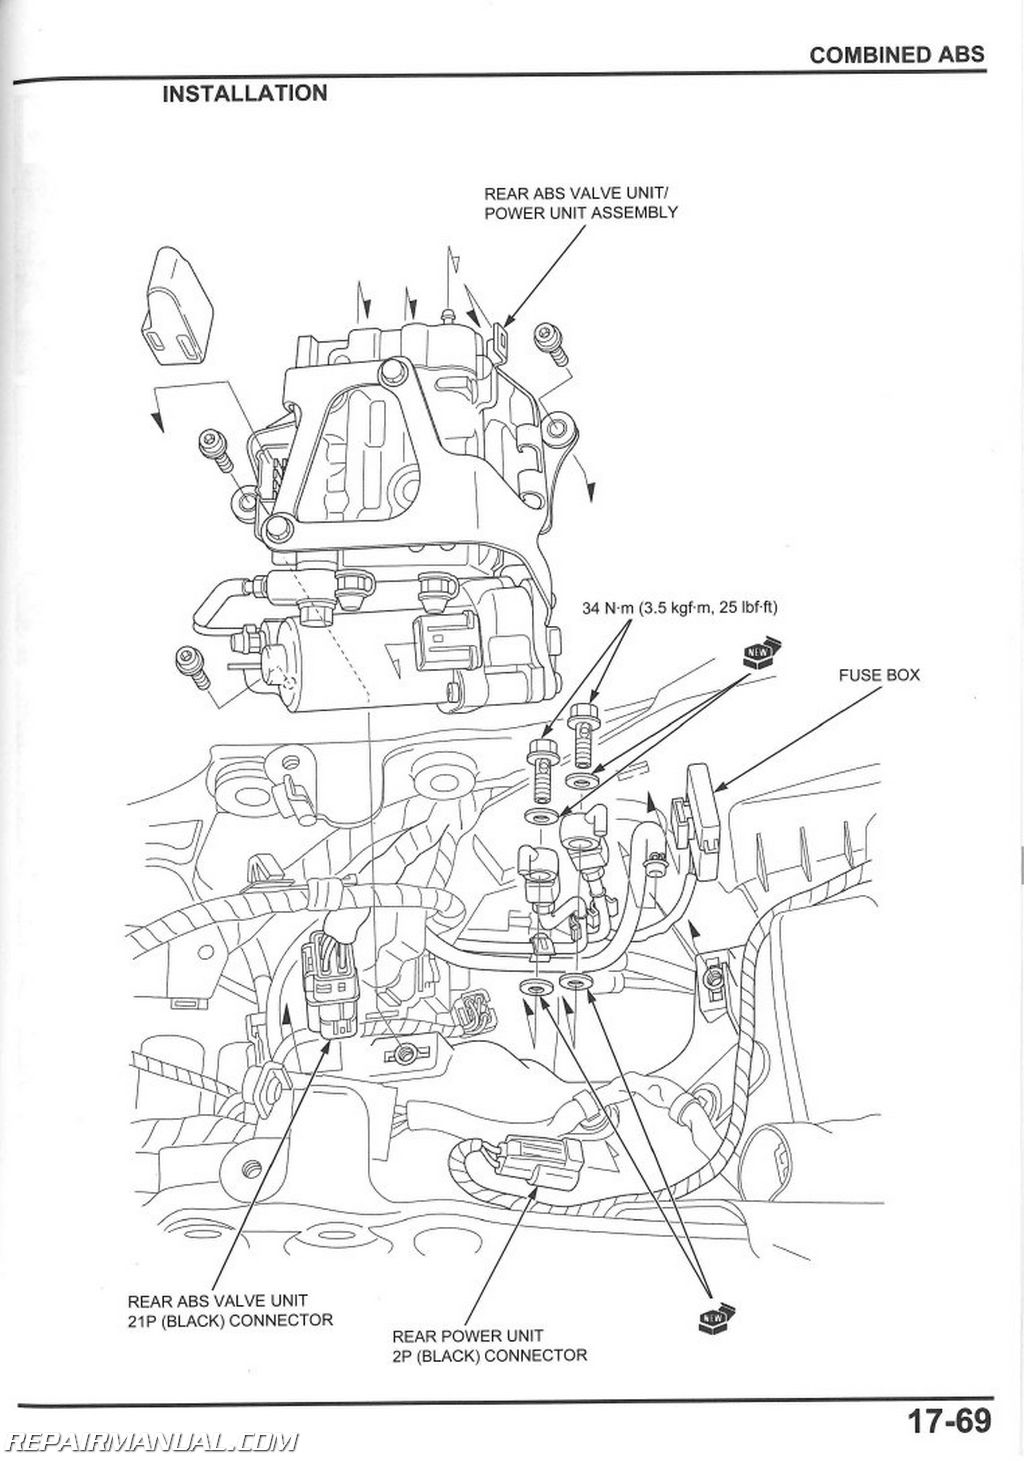 2007 Honda Cbr600rr Fuse Box : 28 Wiring Diagram Images